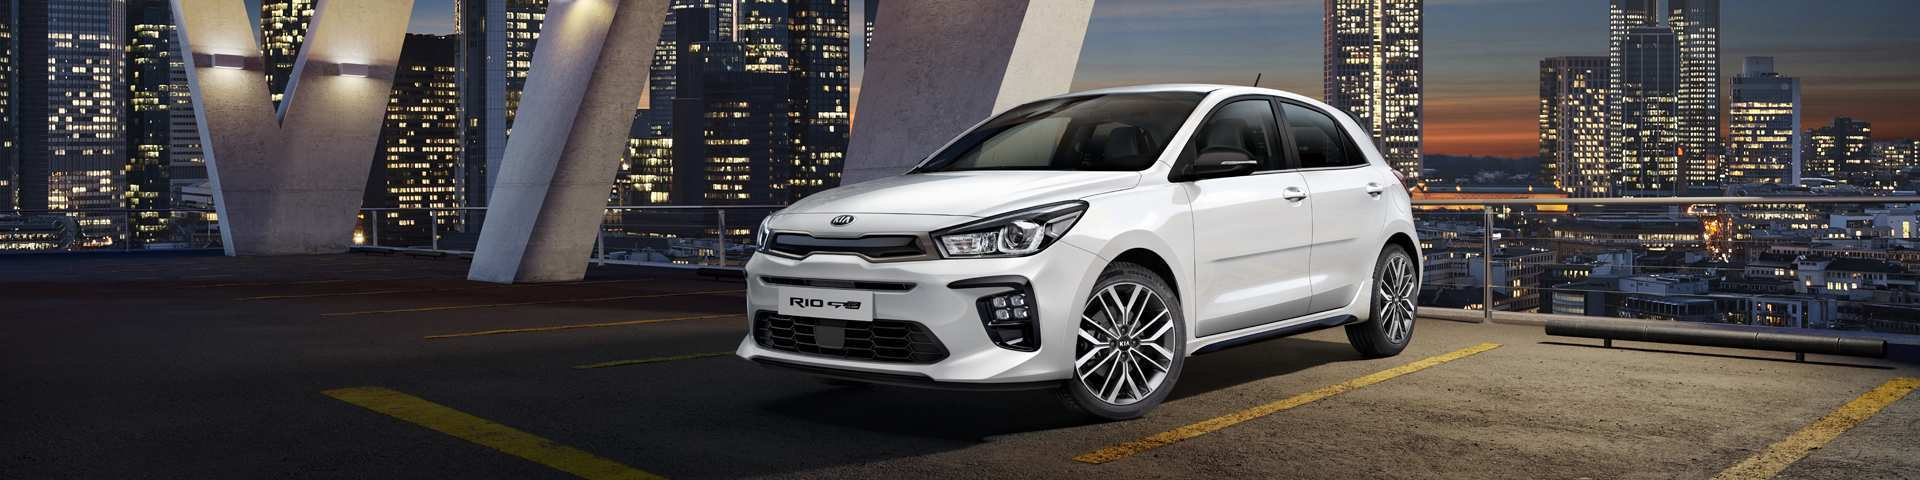 79 Great Kia Rio 2020 New Concept Spy Shoot for Kia Rio 2020 New Concept